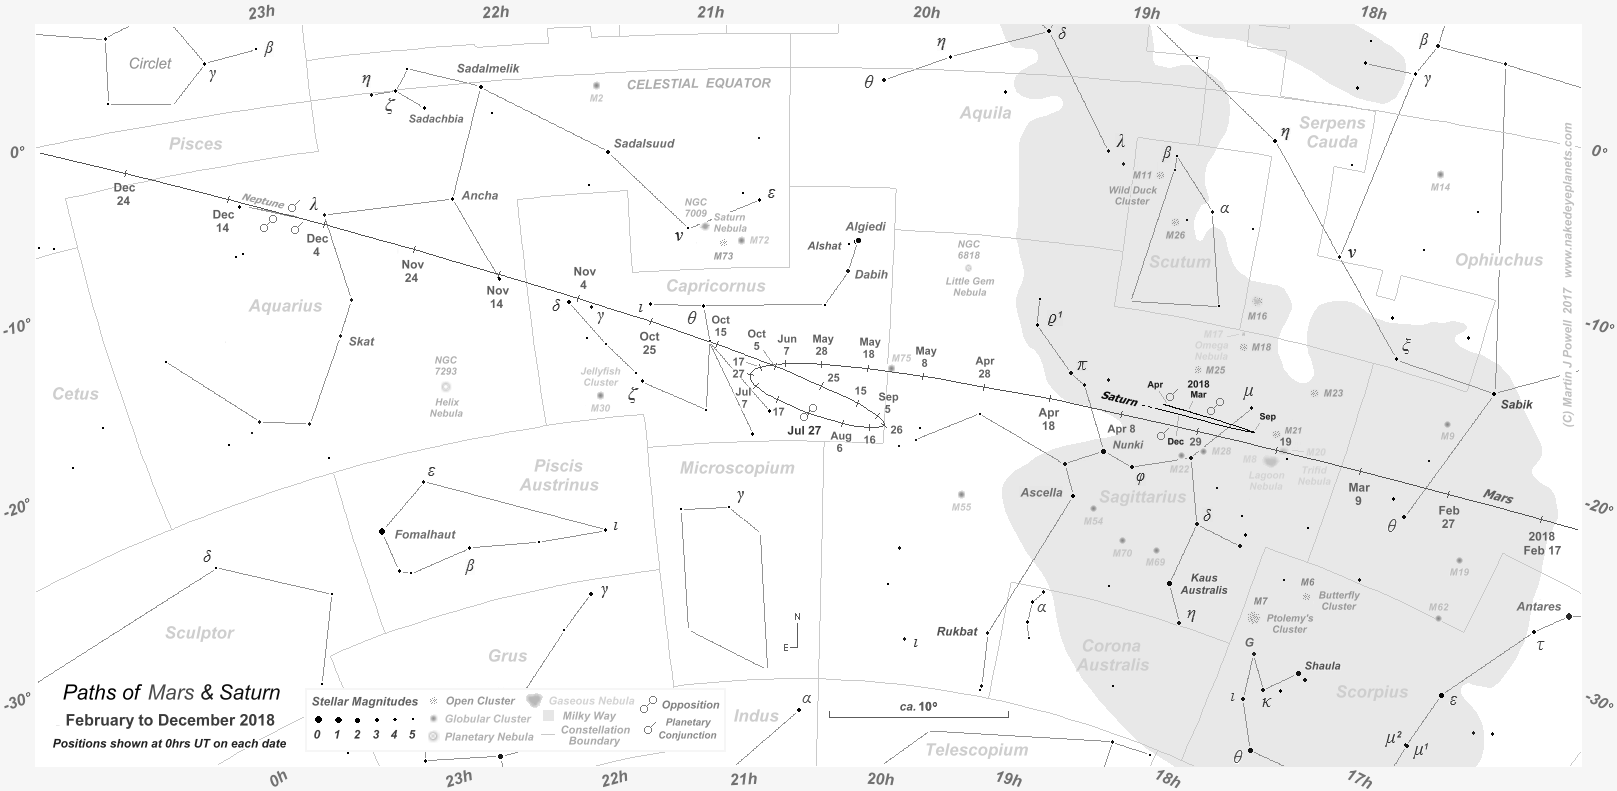 The Position of Mars in the Night Sky 2017 to 2019